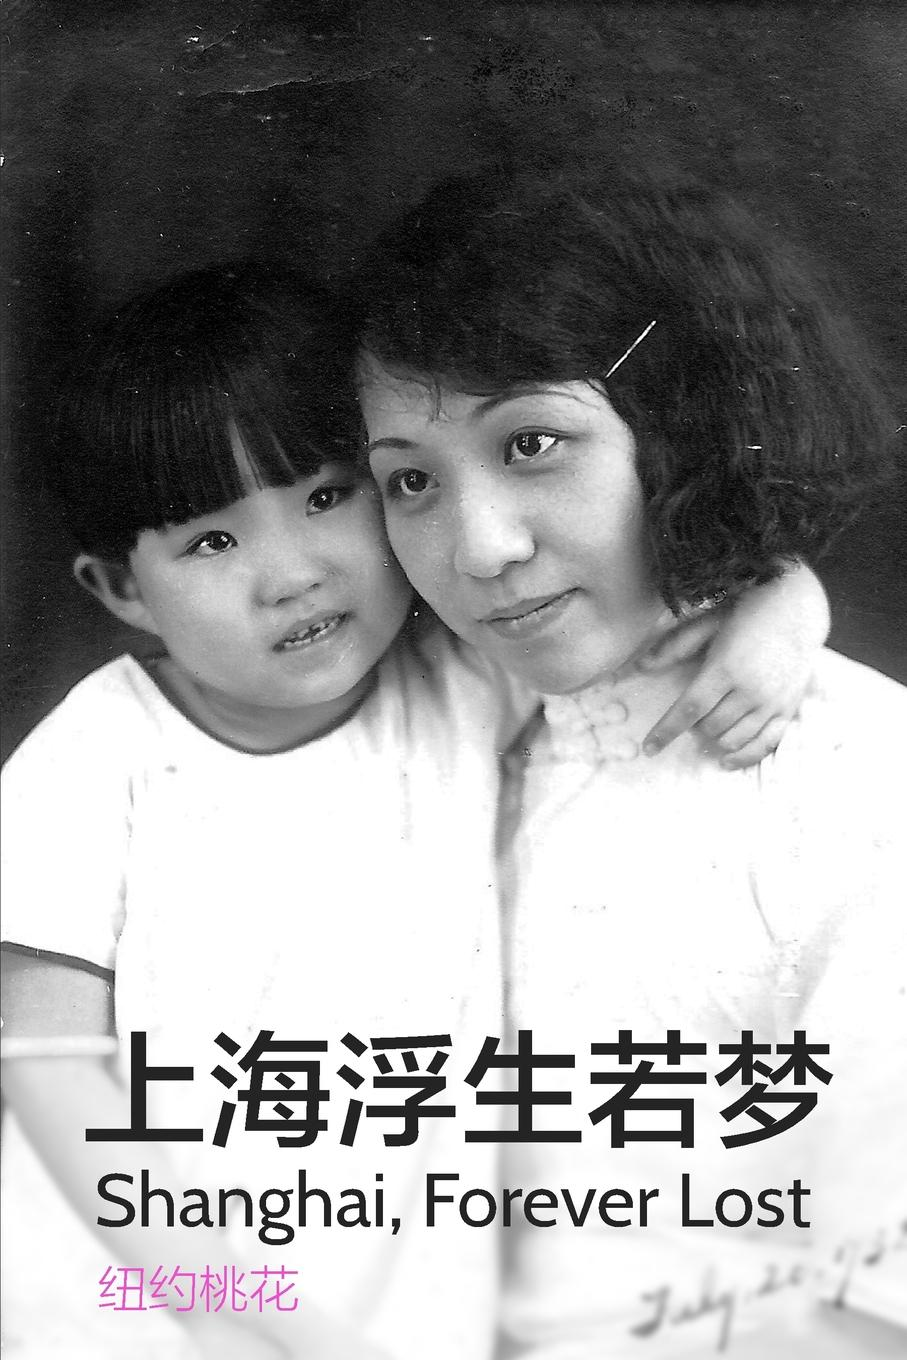 Sonia Hu Shanghai Forever Lost. A Biography of My Grandmother and Mother 赚钱更要赚人生